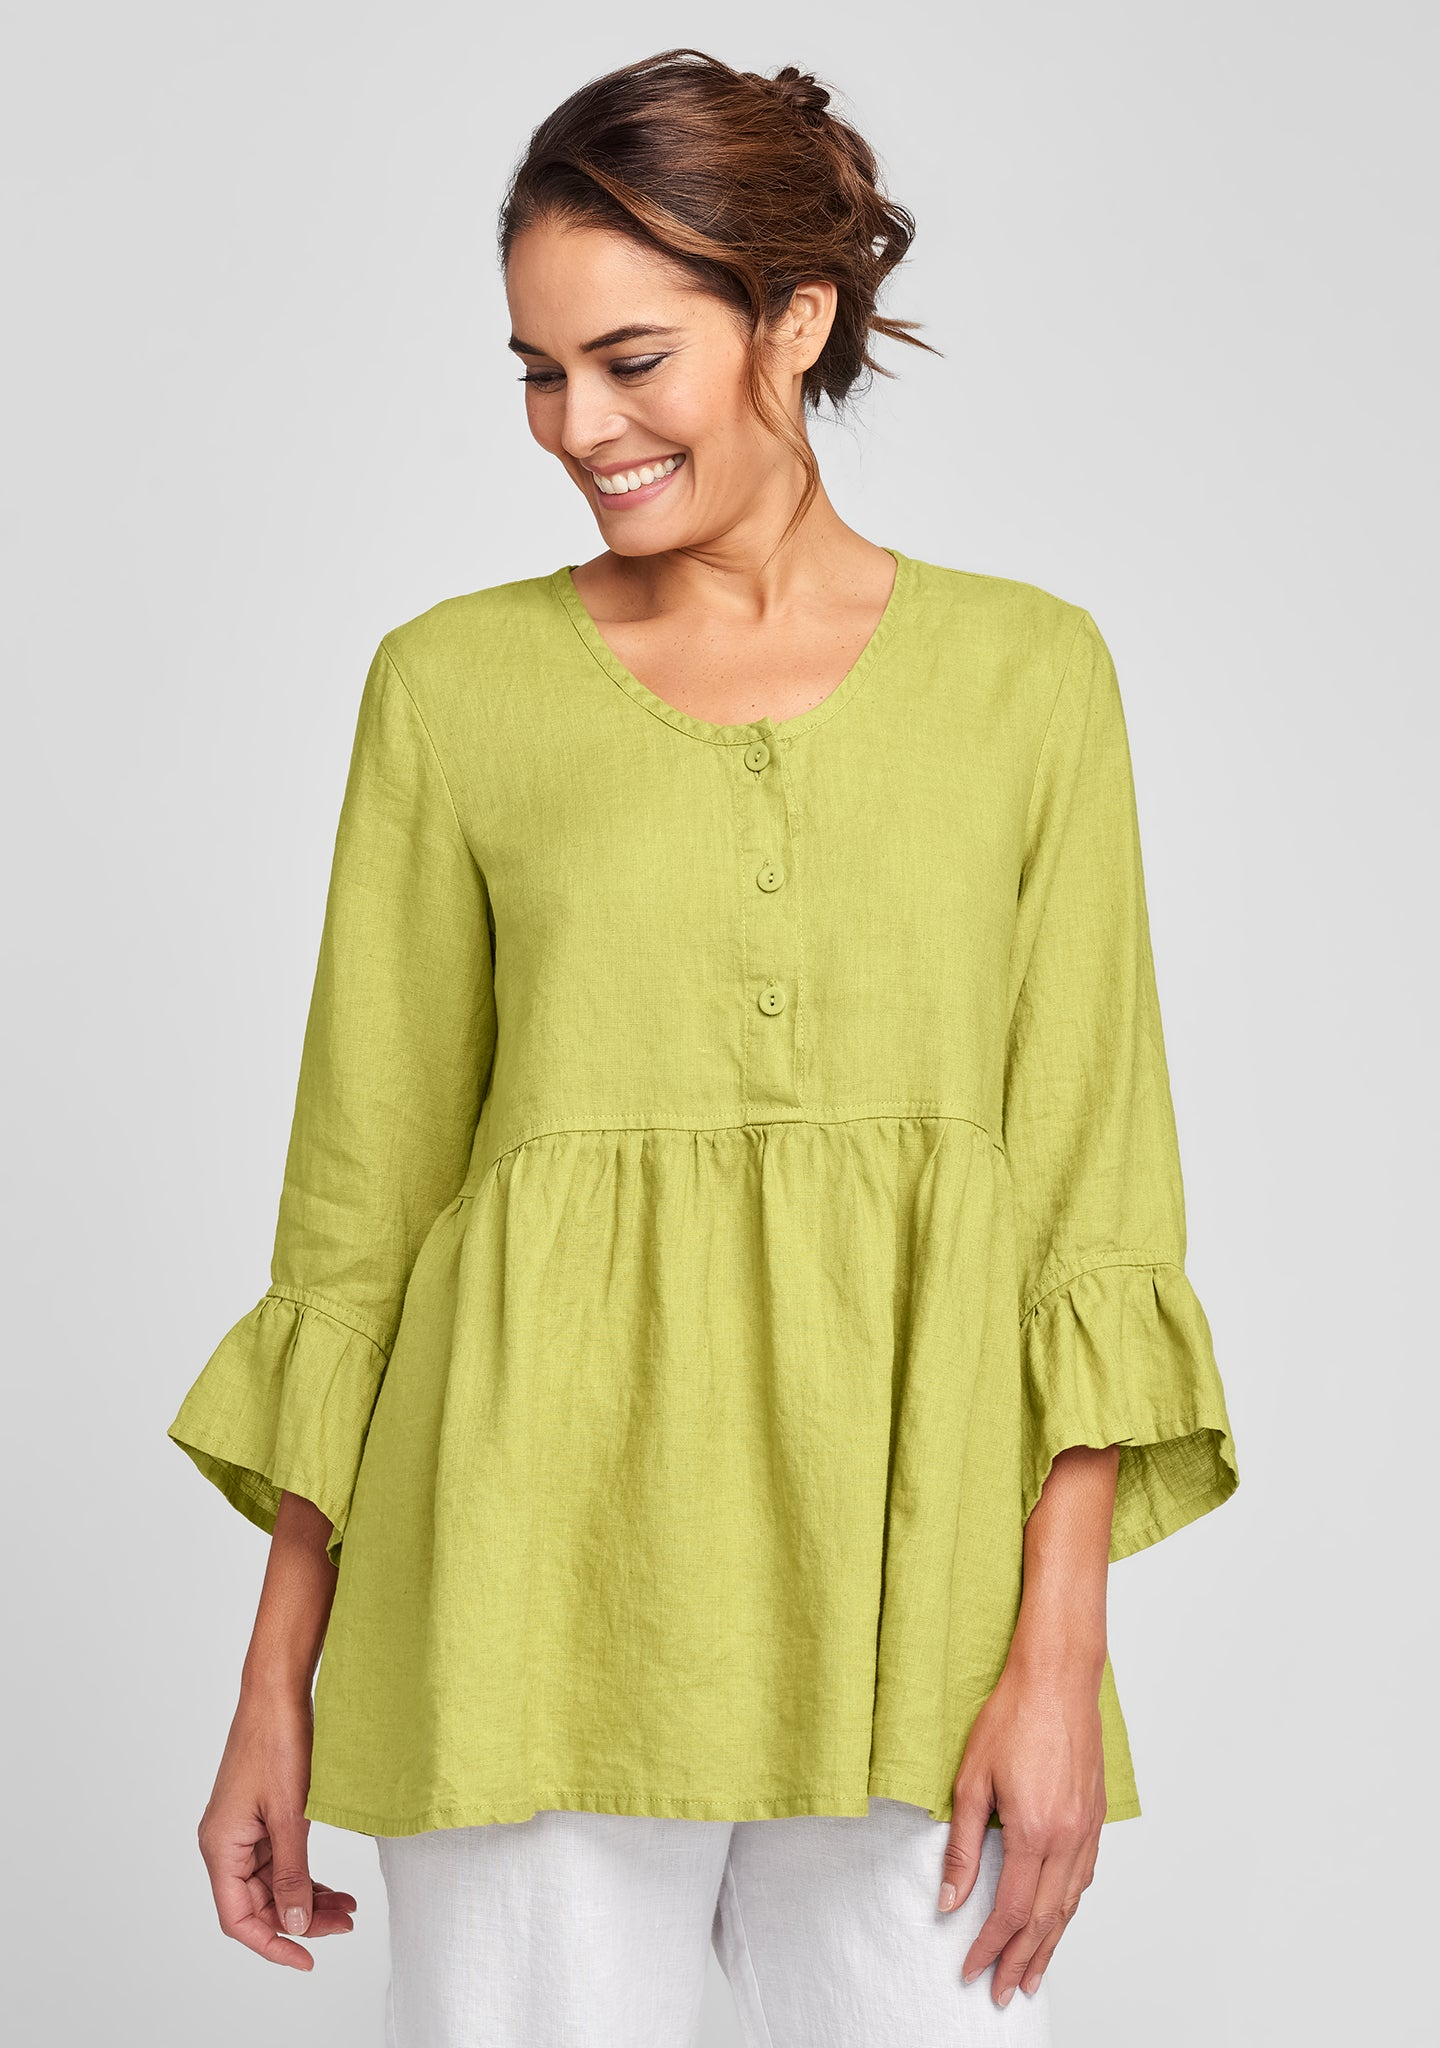 provence blouse linen shirt green